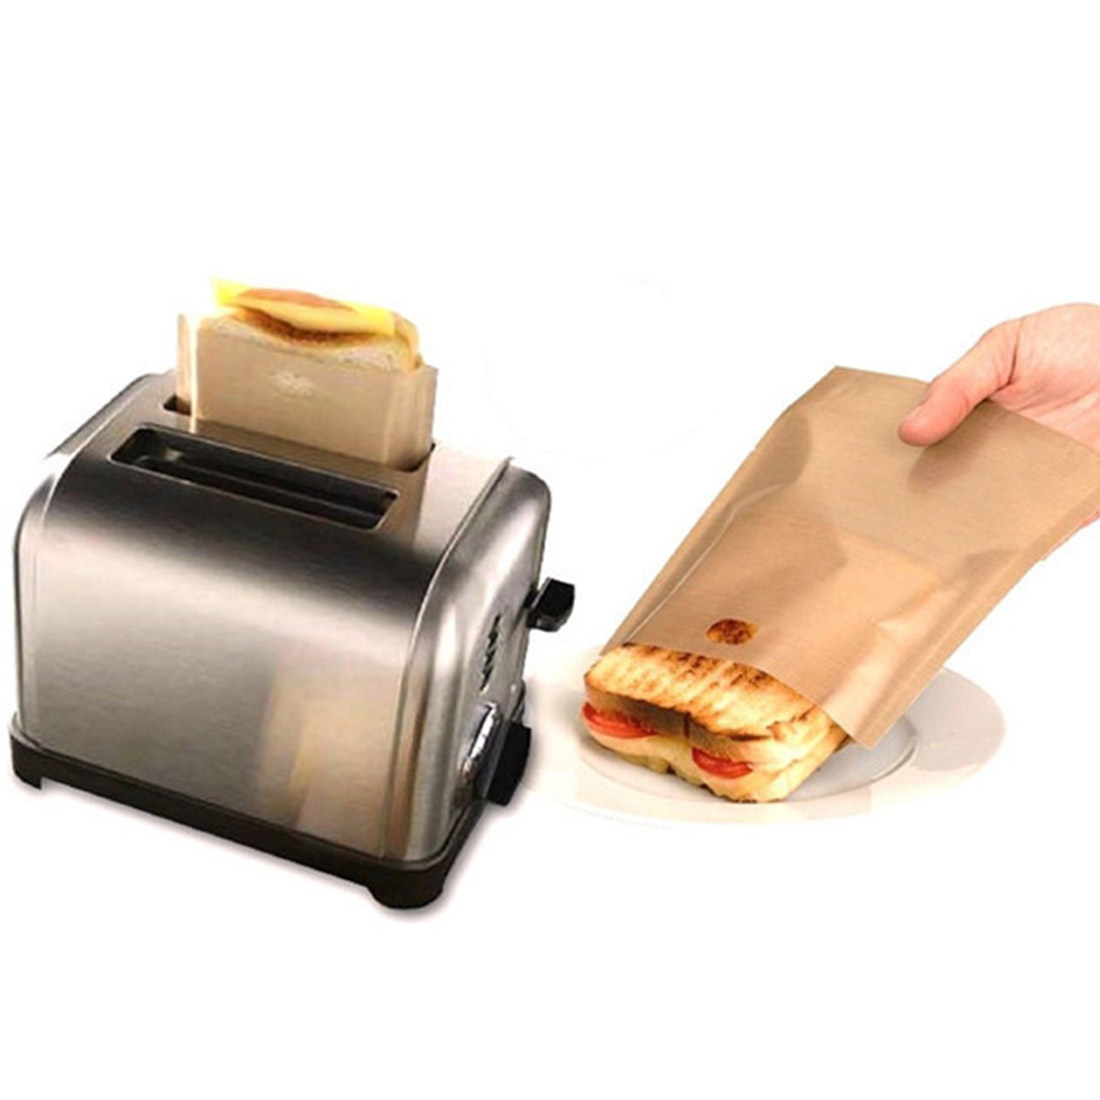 100% FREE - Reusable Toaster S...